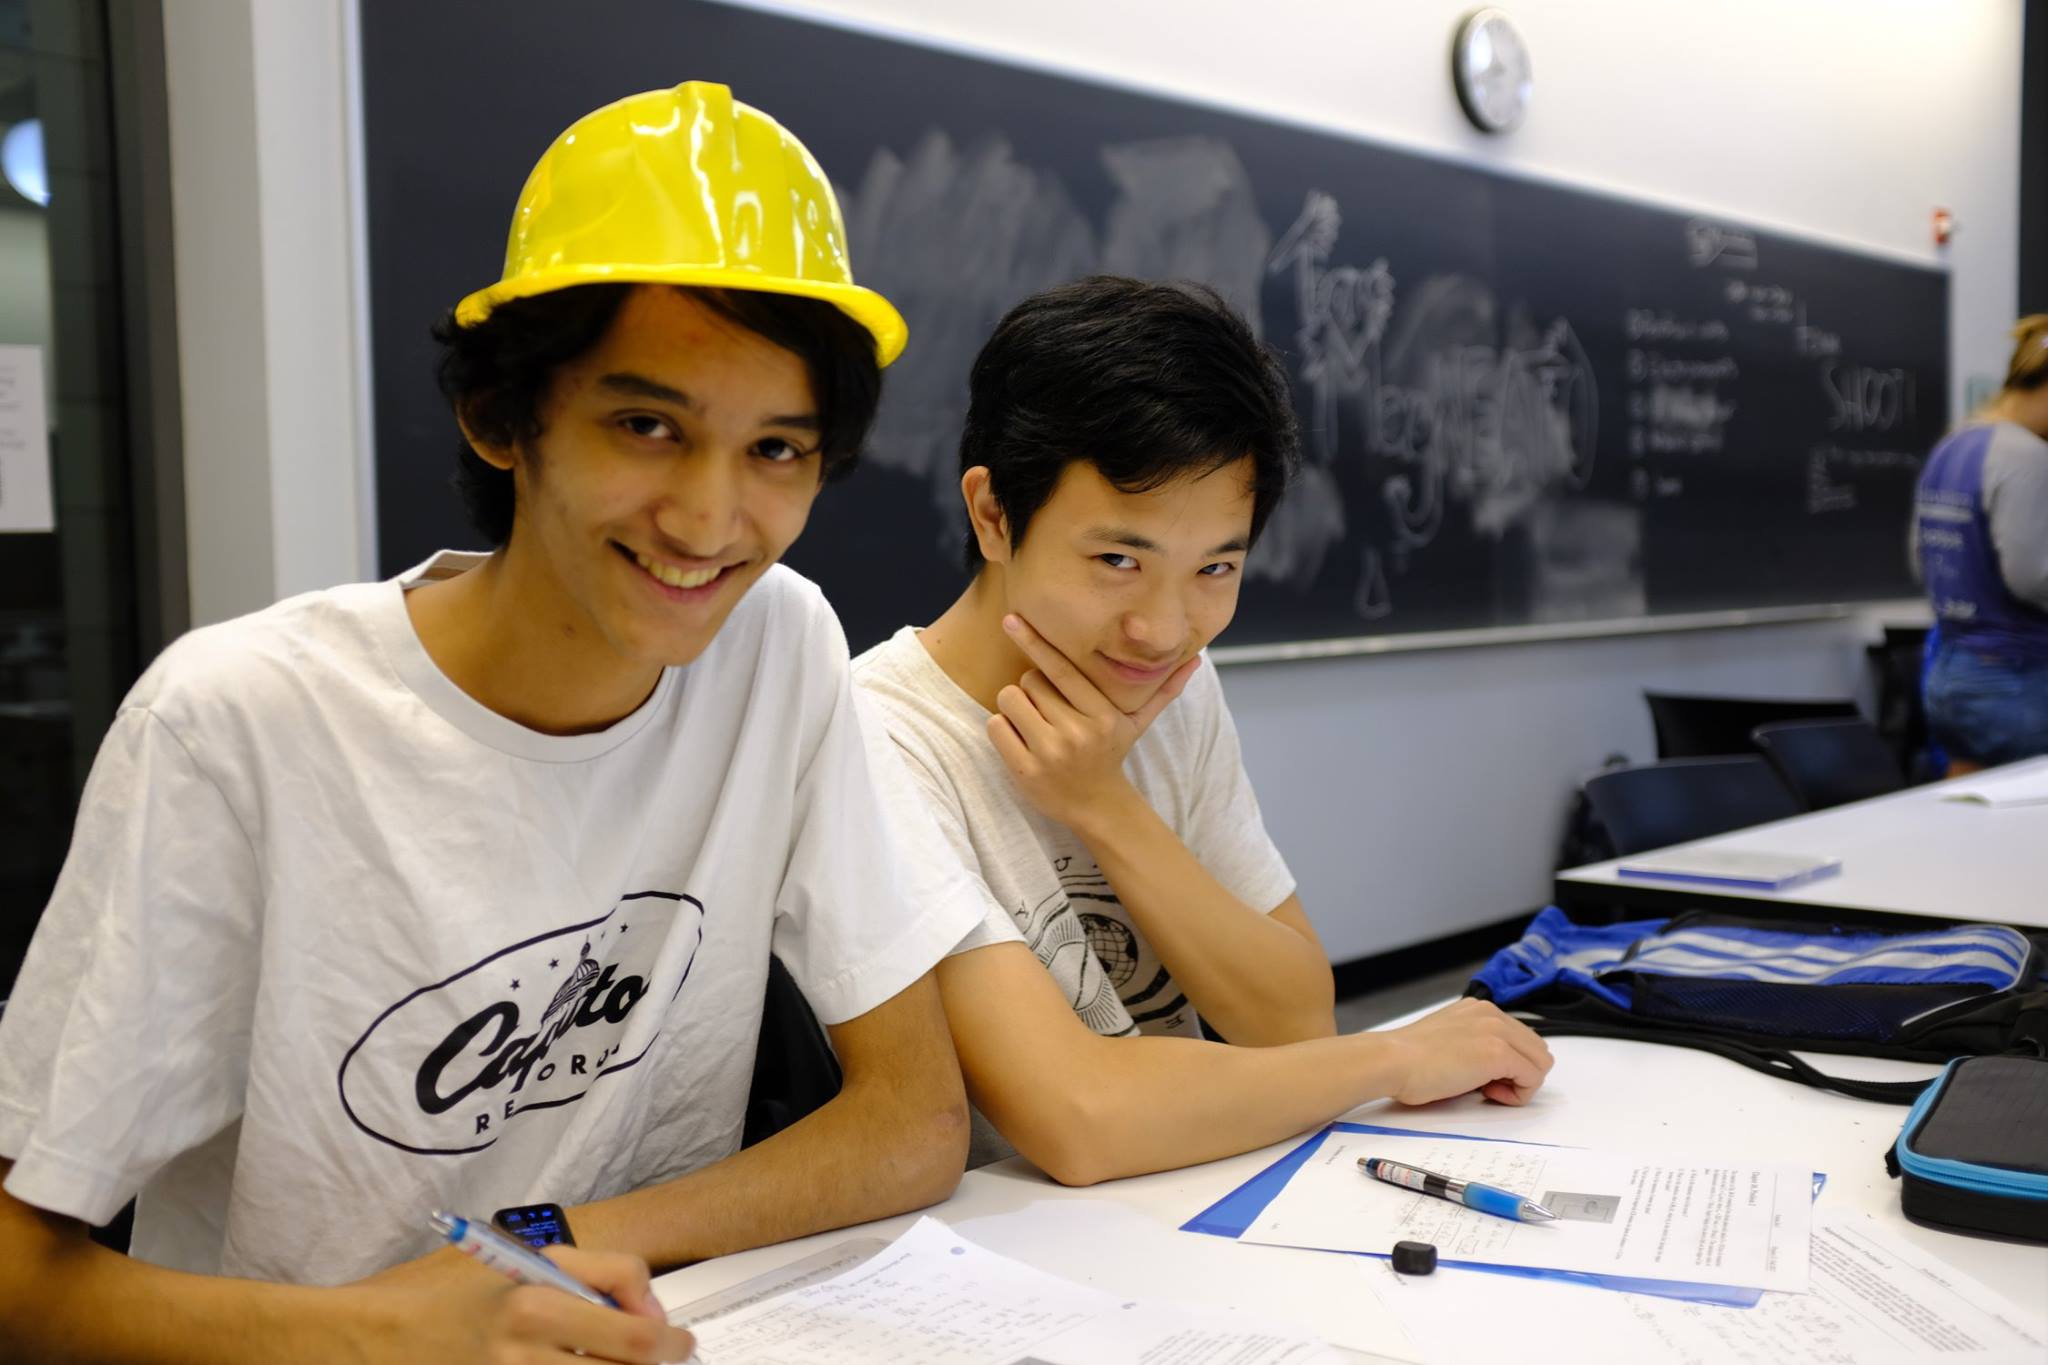 Two students pose for a photo at the hackathon